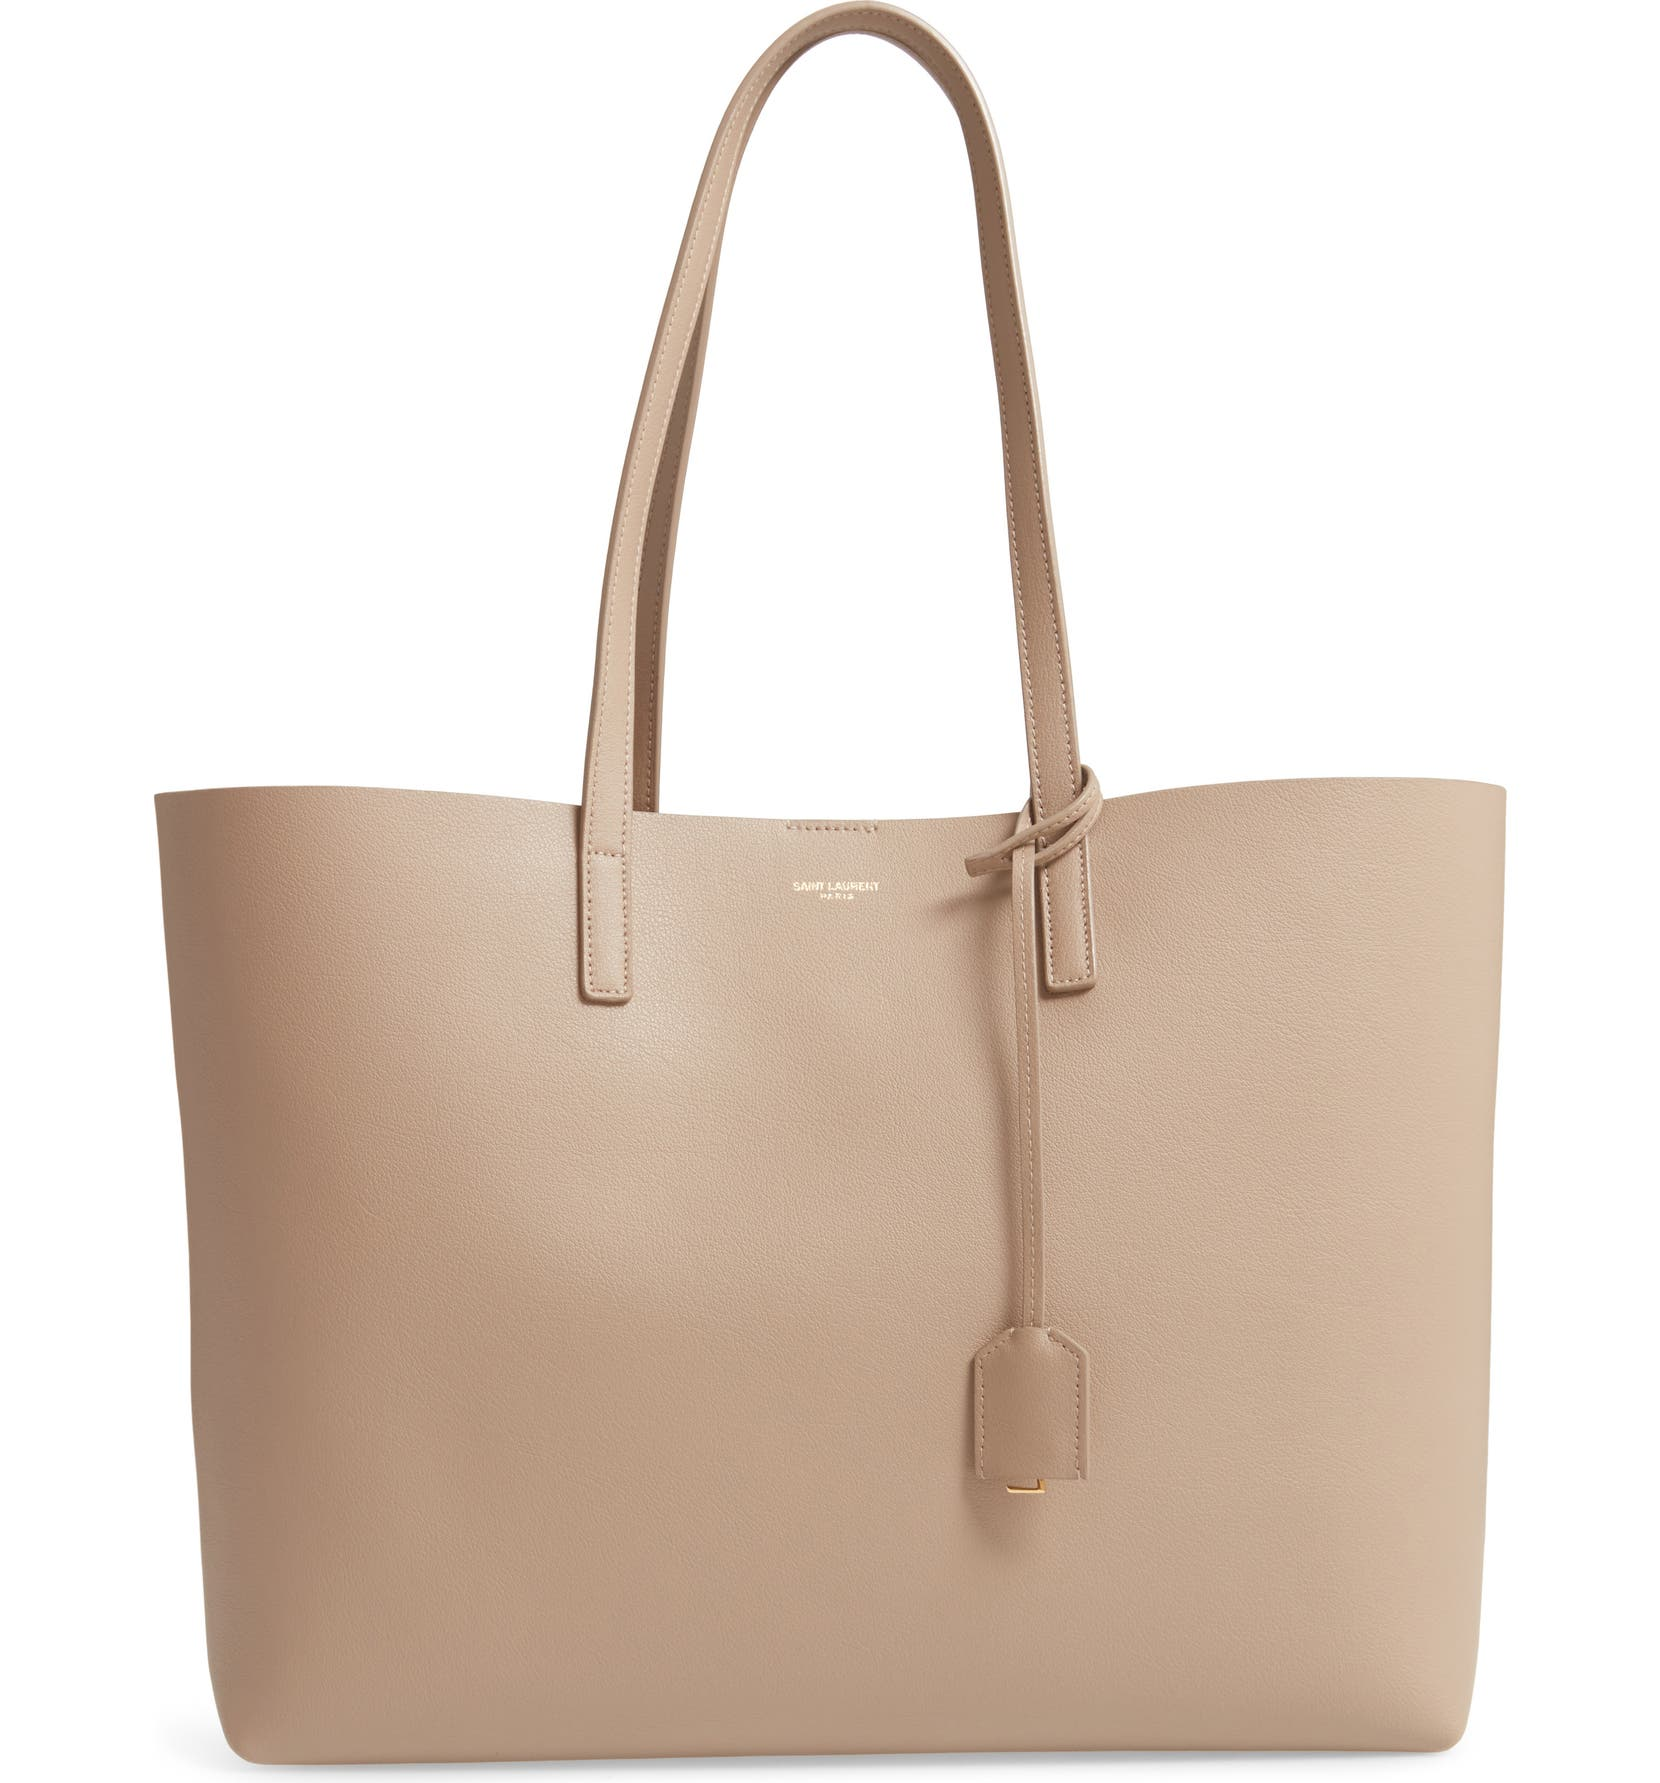 83de0dcdf42 Saint Laurent 'Shopping' Leather Tote | Nordstrom